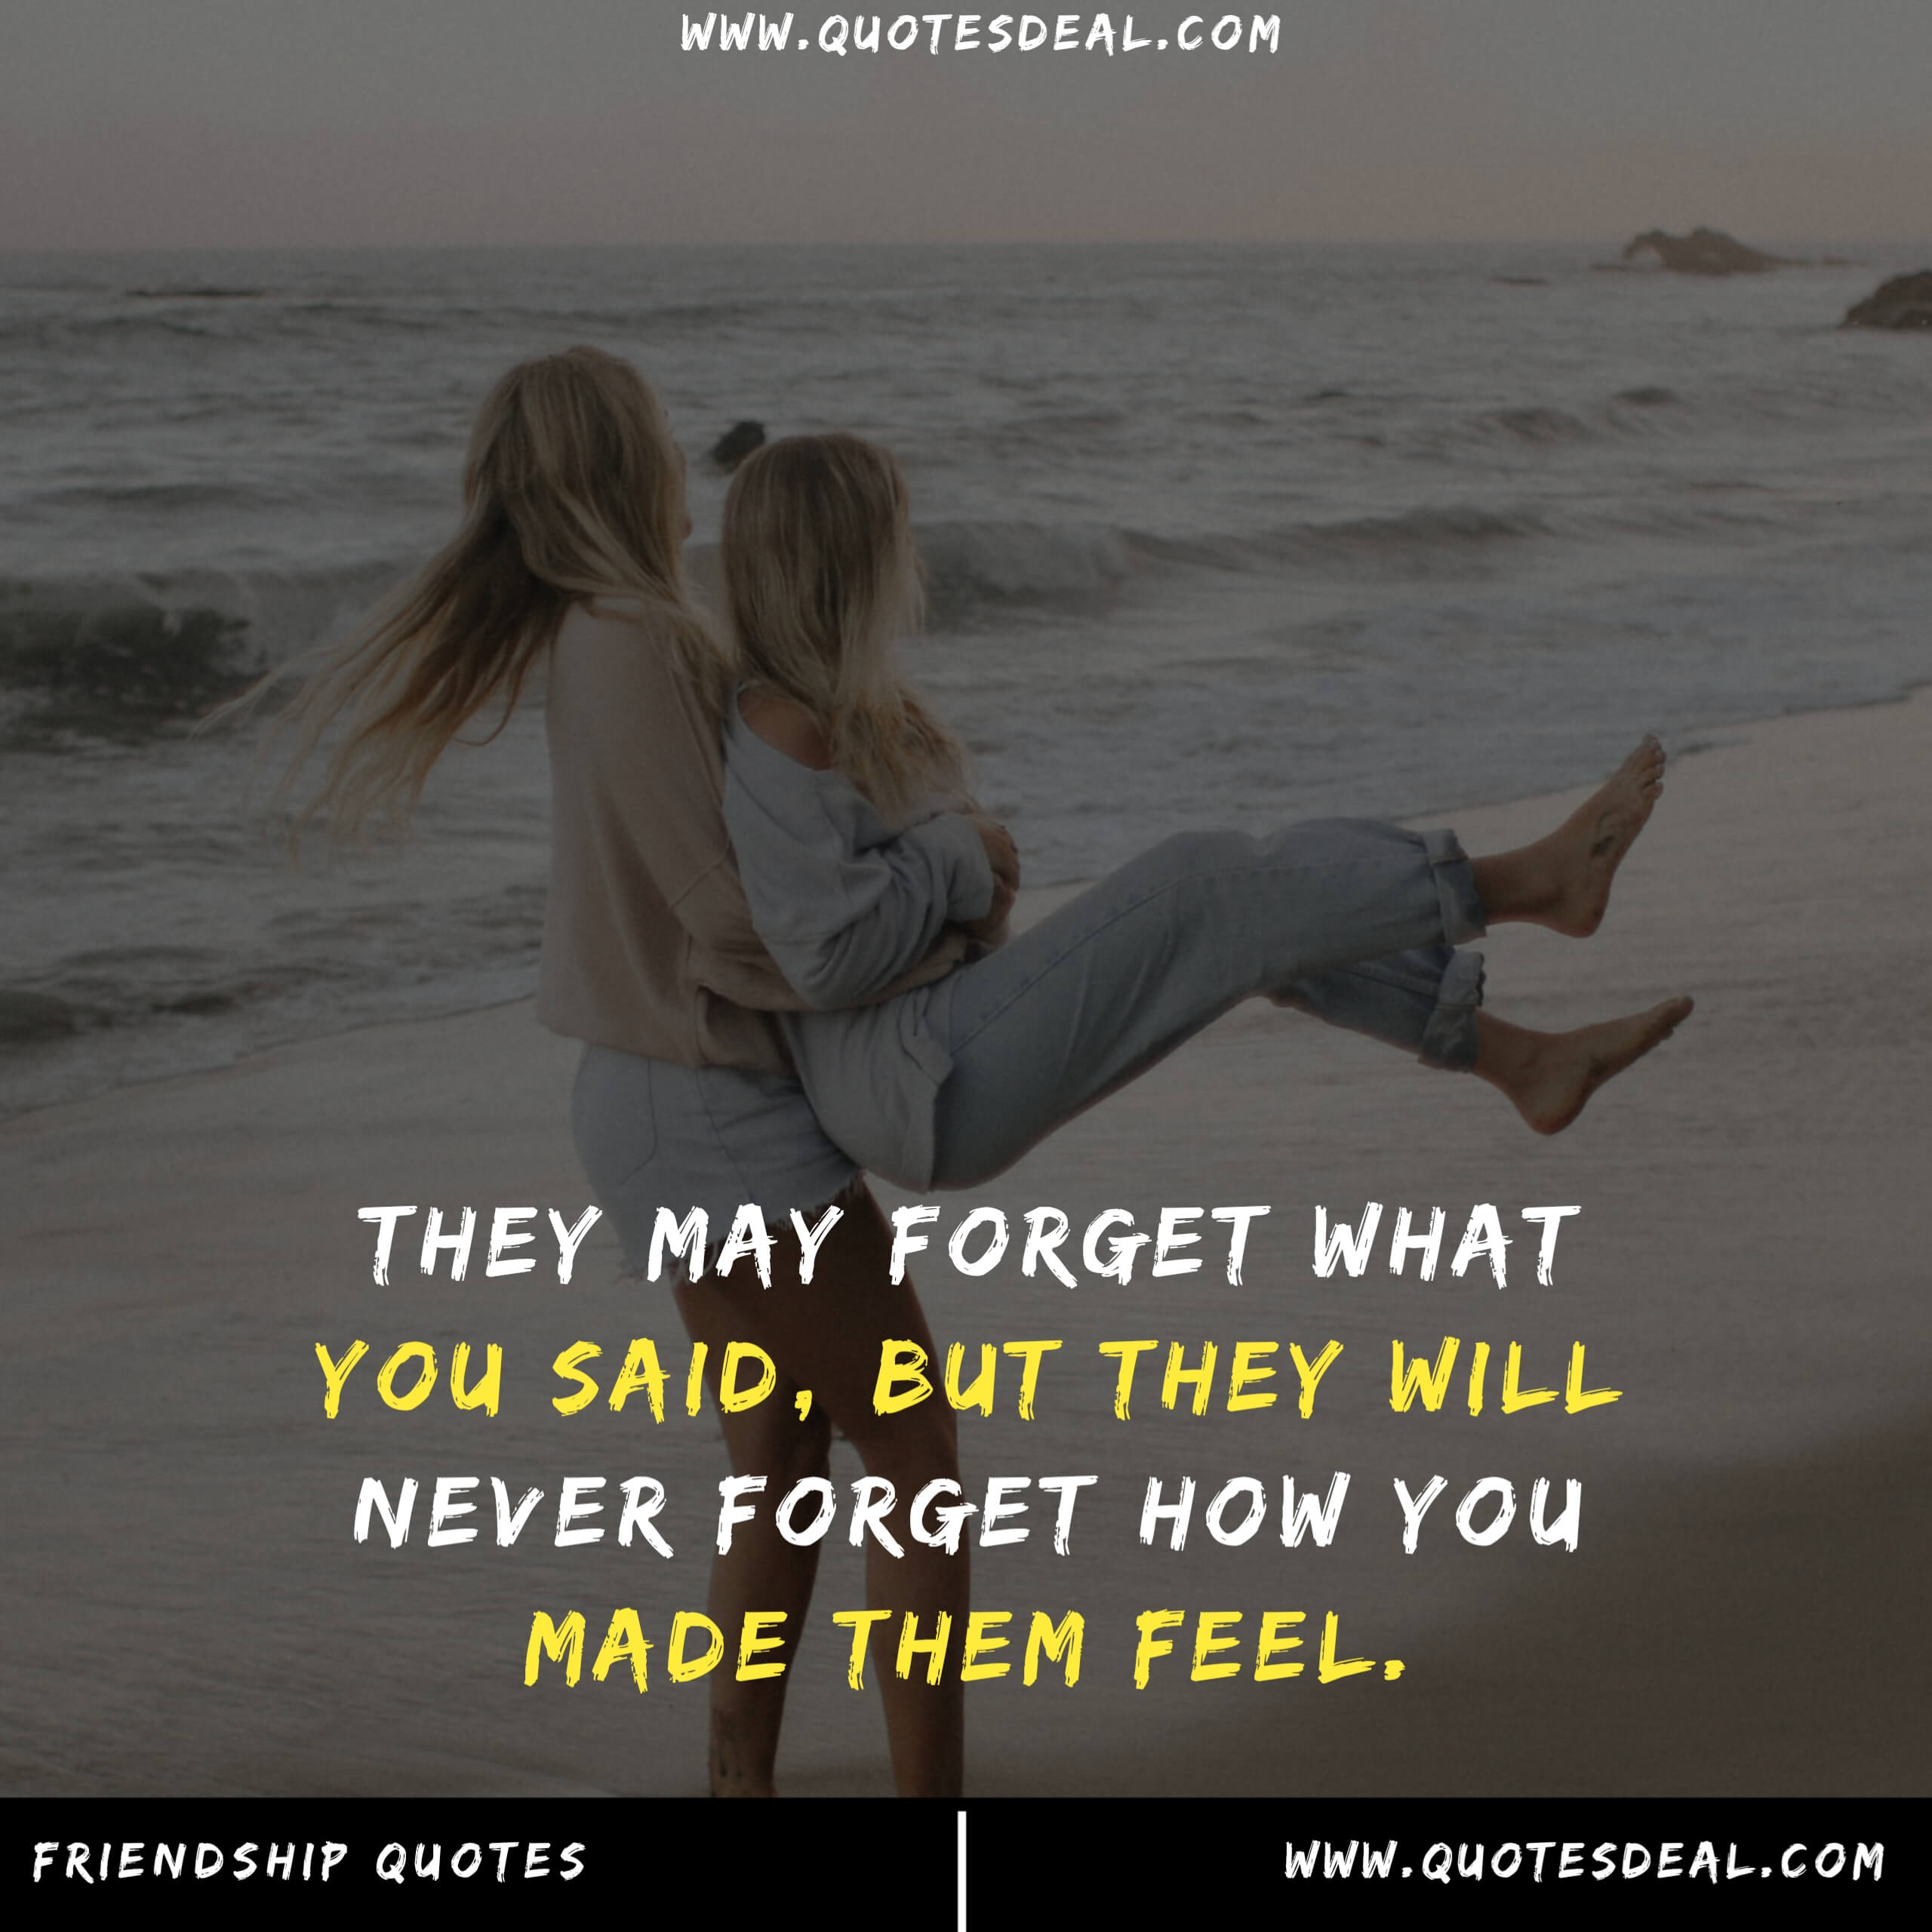 may forget what you said